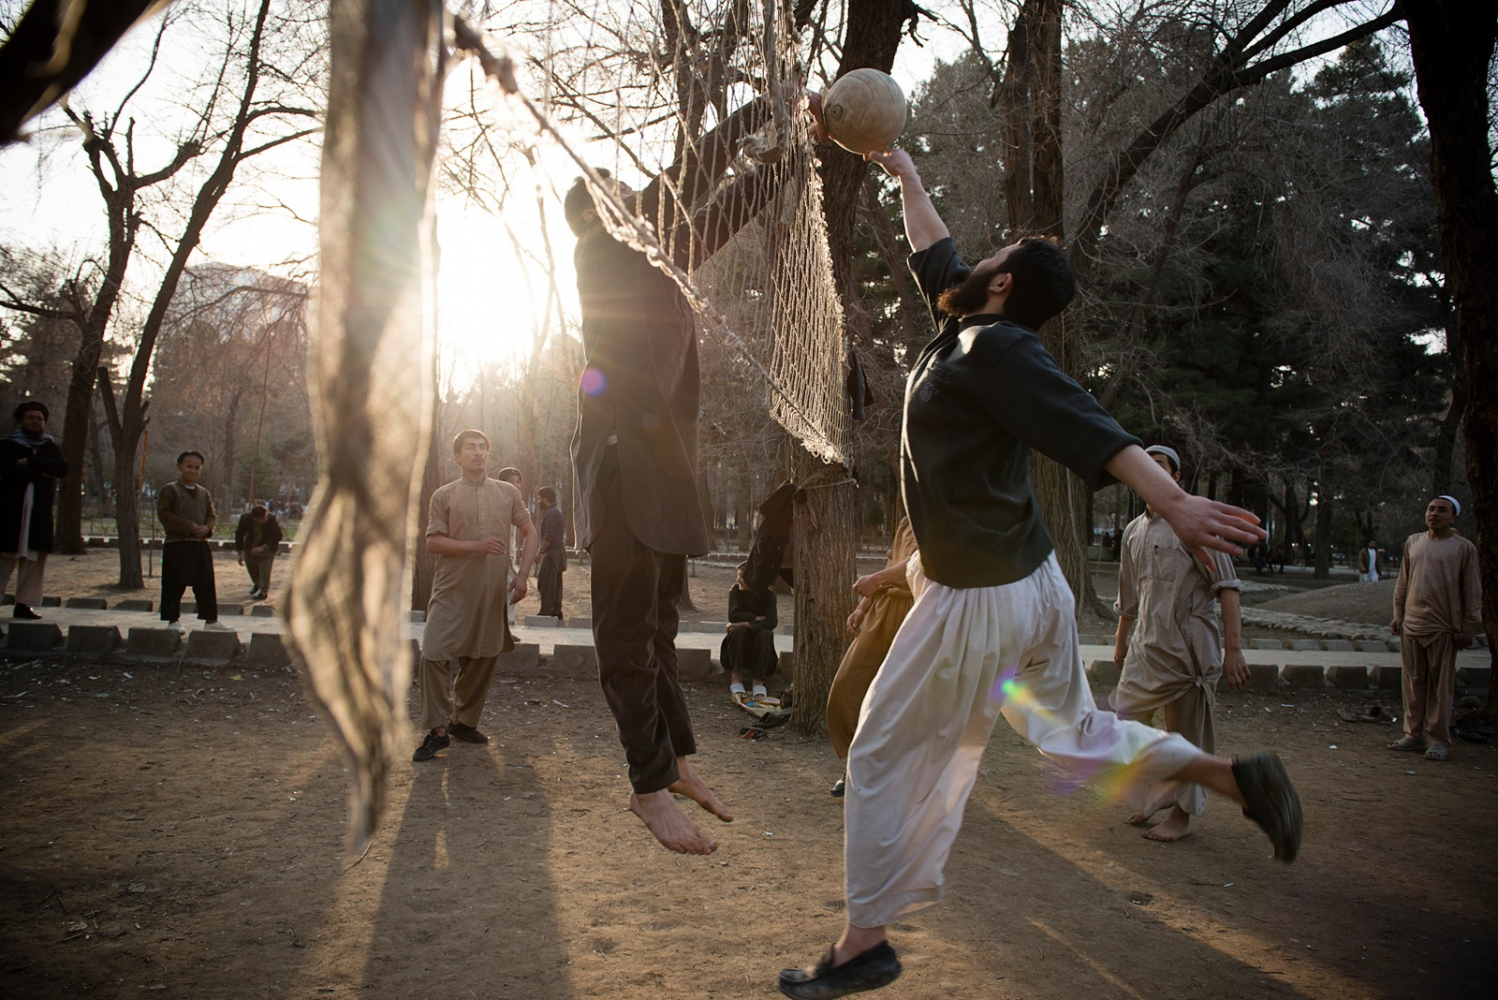 KABUL, AFGHANISTAN | 2015-03-12 | Every Friday the Shahre Now park fills up with hundreds of young afghan men who come to the park to play volleyball, soccer or cricket.